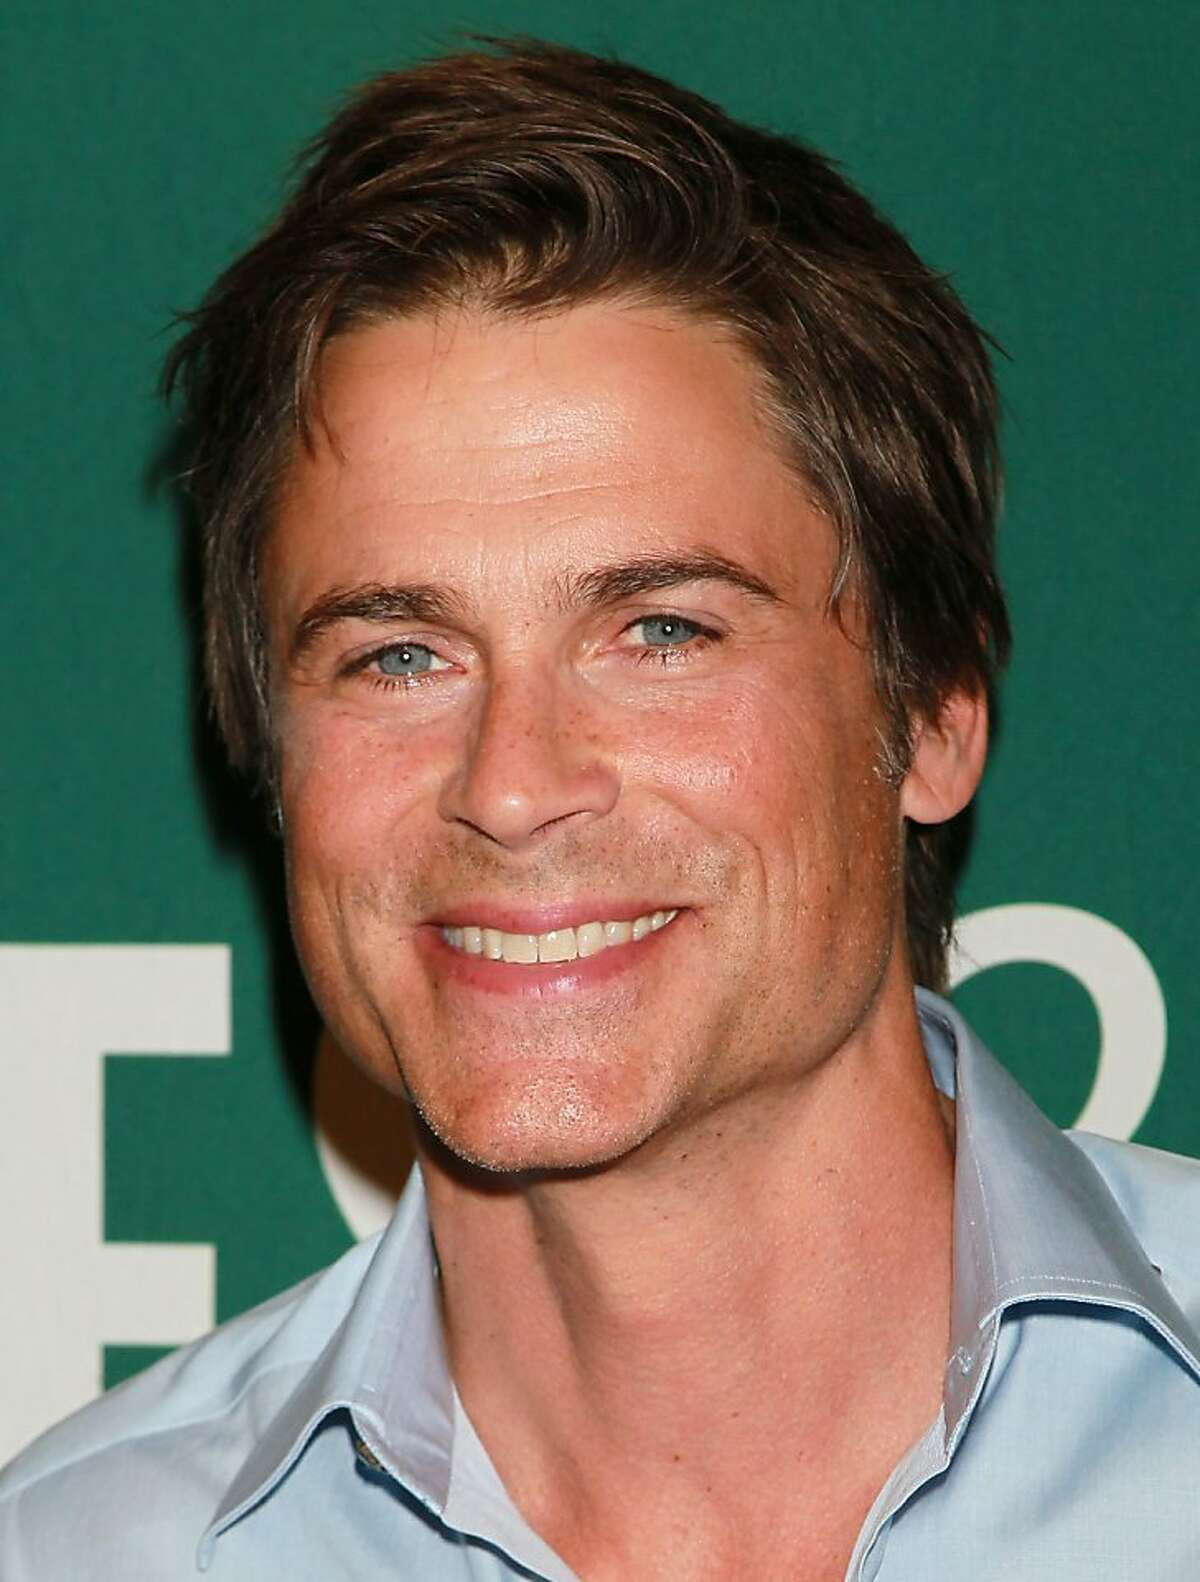 LOS ANGELES, CA - APRIL 29: Actor Rob Lowe attends a signing for his book